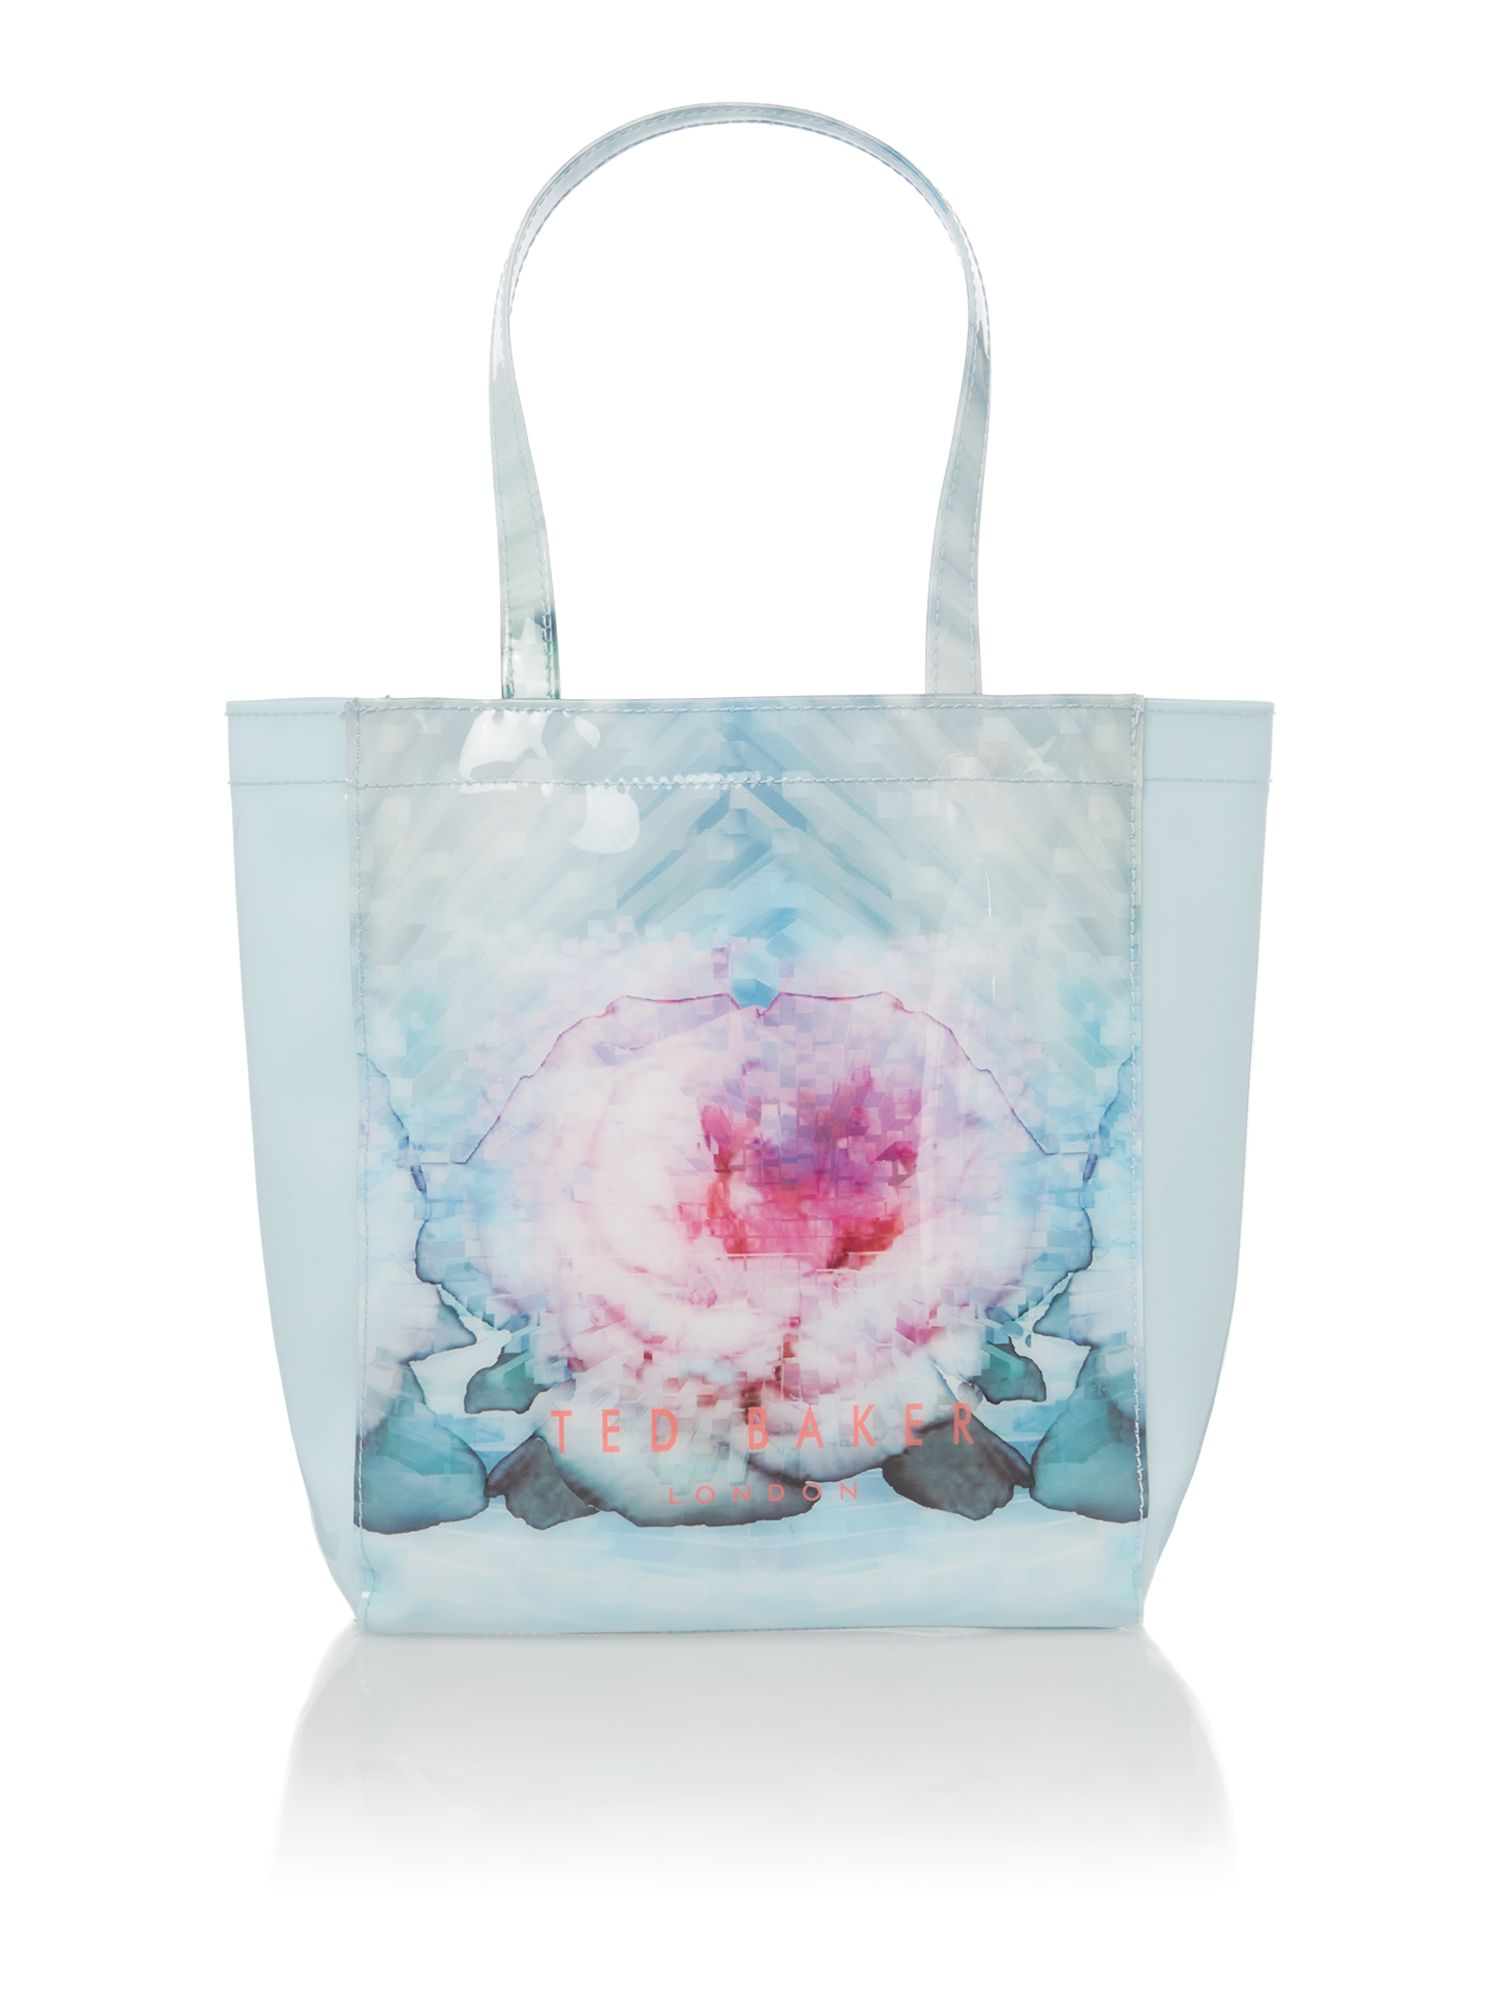 Small blue exclusive bowcon tote bag